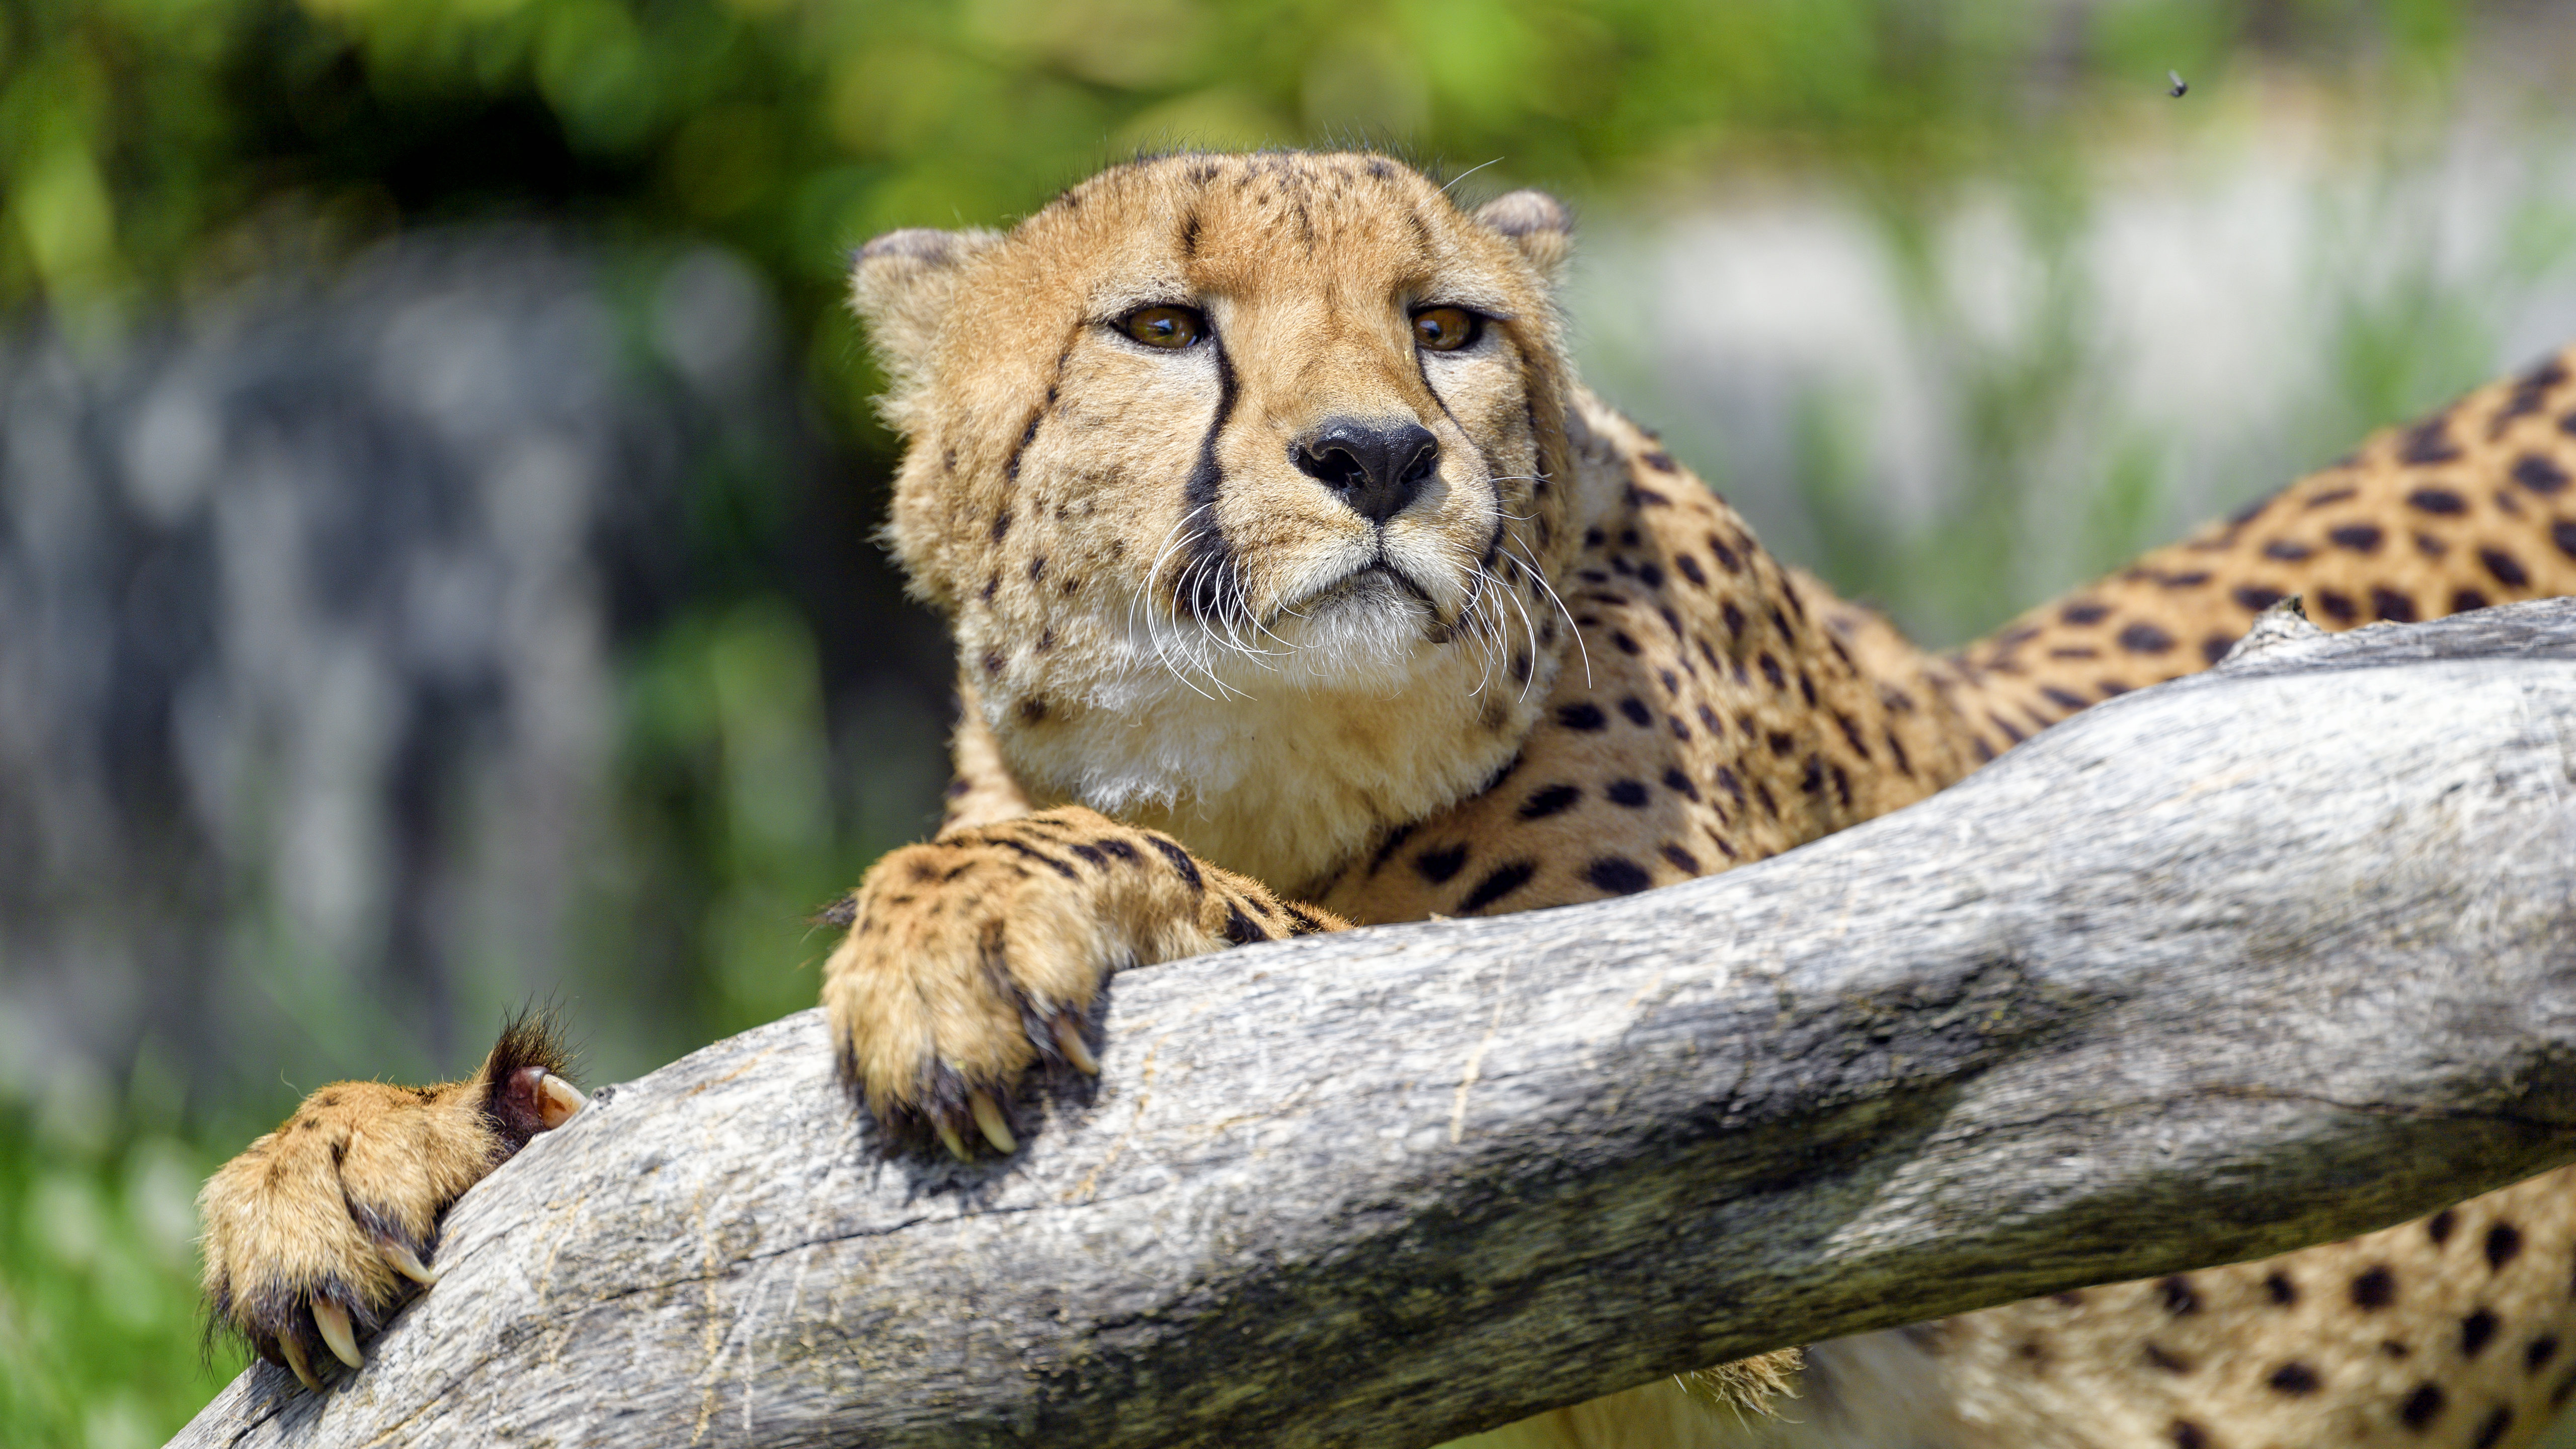 51949 download wallpaper Animals, Cheetah, Wood, Tree, Muzzle, Predator, Big Cat, Sight, Opinion screensavers and pictures for free